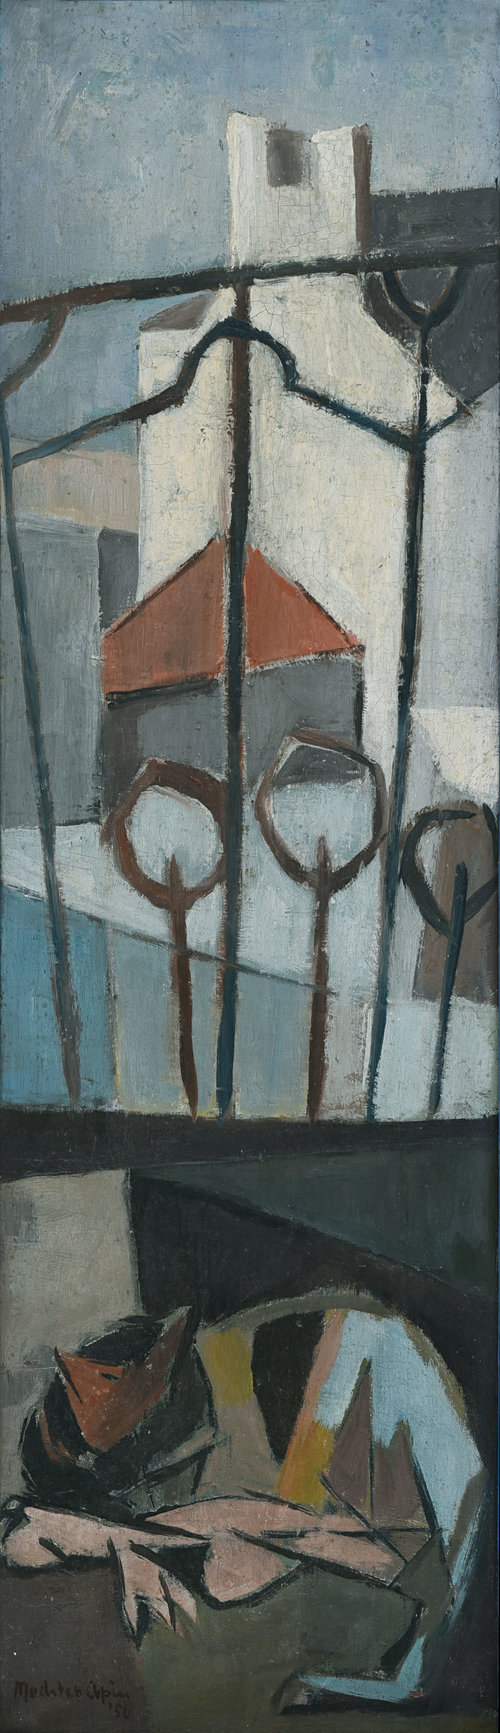 Mochtar Apin, Kucing (Cat), oil on canvas on board, 64 x 18.9 cm, 1956